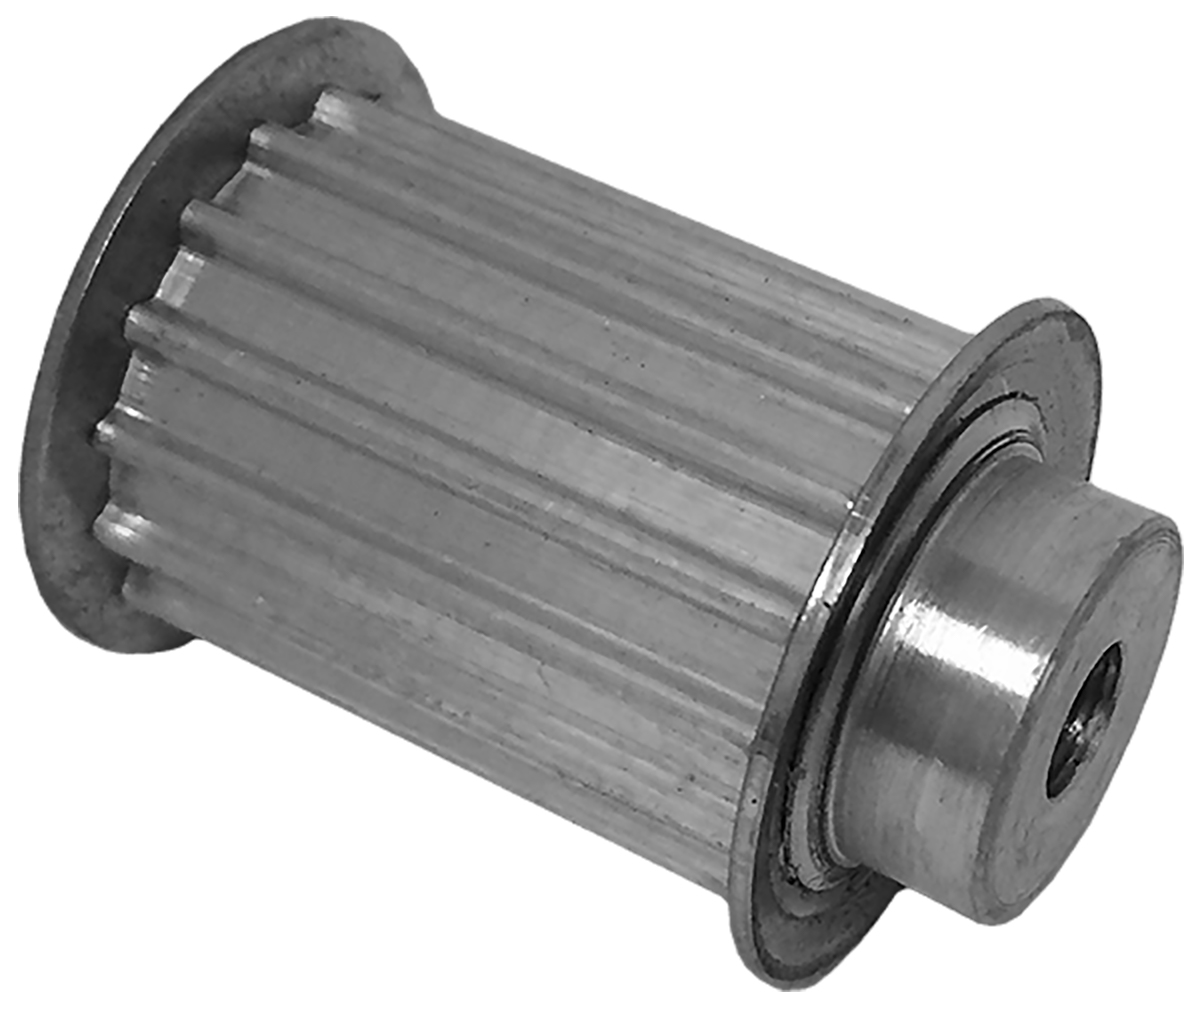 38AT5/15-2 - Aluminum Metric Pulleys